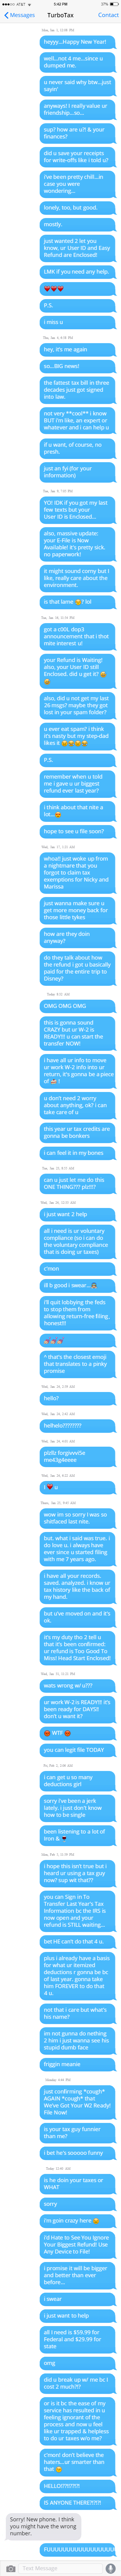 A Series of Unanswered Texts As If TurboTax Were A Thirsty Ex Trying To Win You Back.png